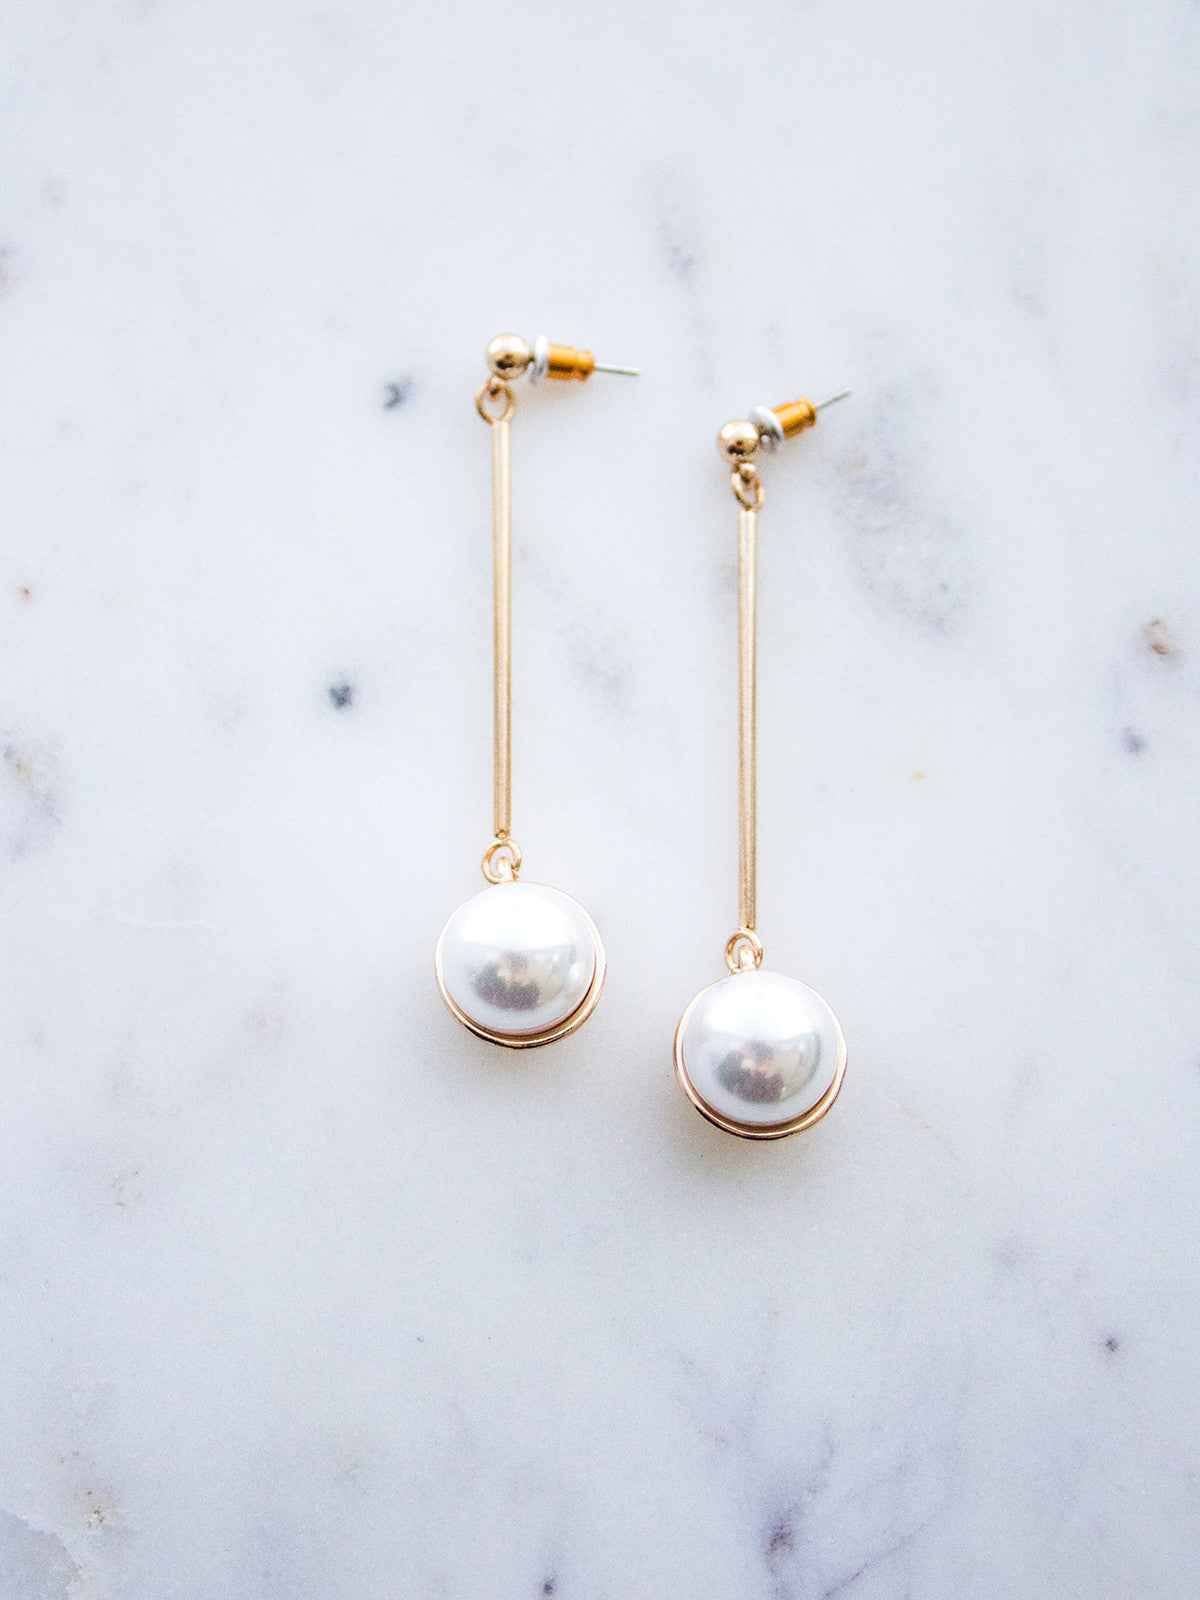 STAY WITH ME GOLD + PEARL STATEMENT EARRINGS